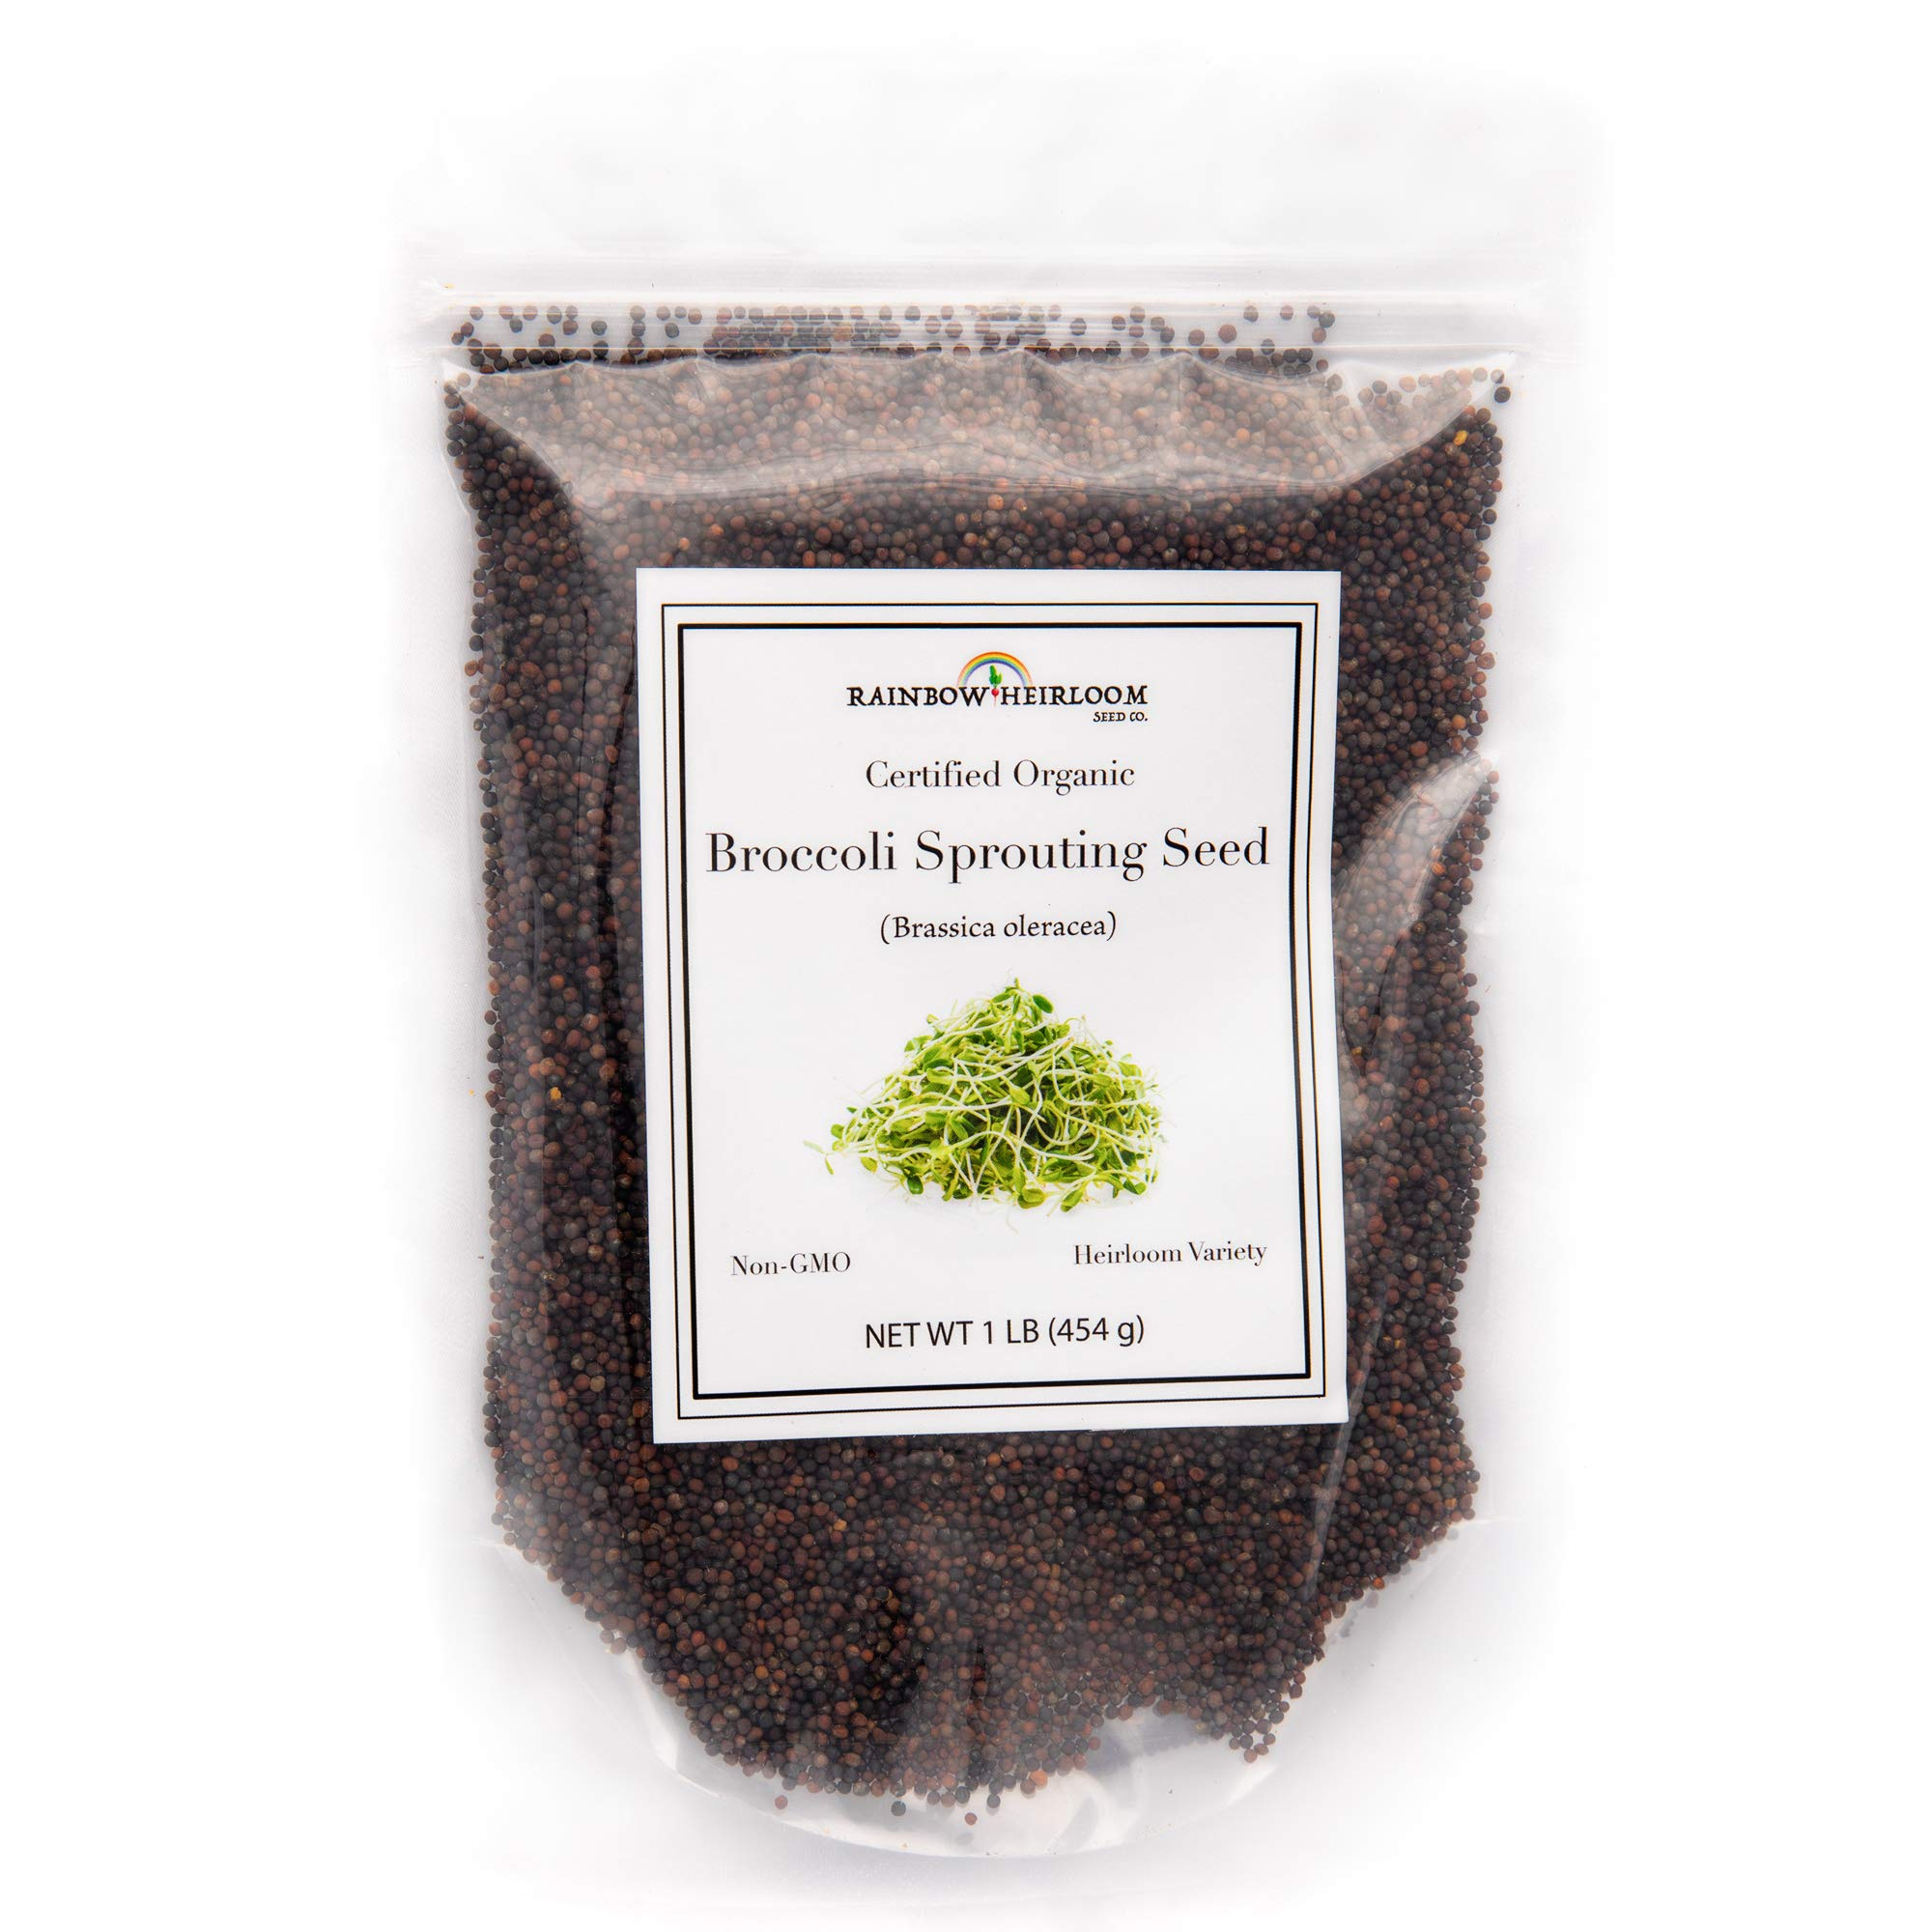 Certified Organic Broccoli Sprouting Seeds for Broccoli Sprouts & Microgreens | Non GMO Seed Heirloom Variety | 1 LB Resealable Bag | Perfect for Sprouting Jar & Seed Tray | Rainbow Heirloom Seed Co. by Rainbow Heirloom Seed Co. (Image #1)